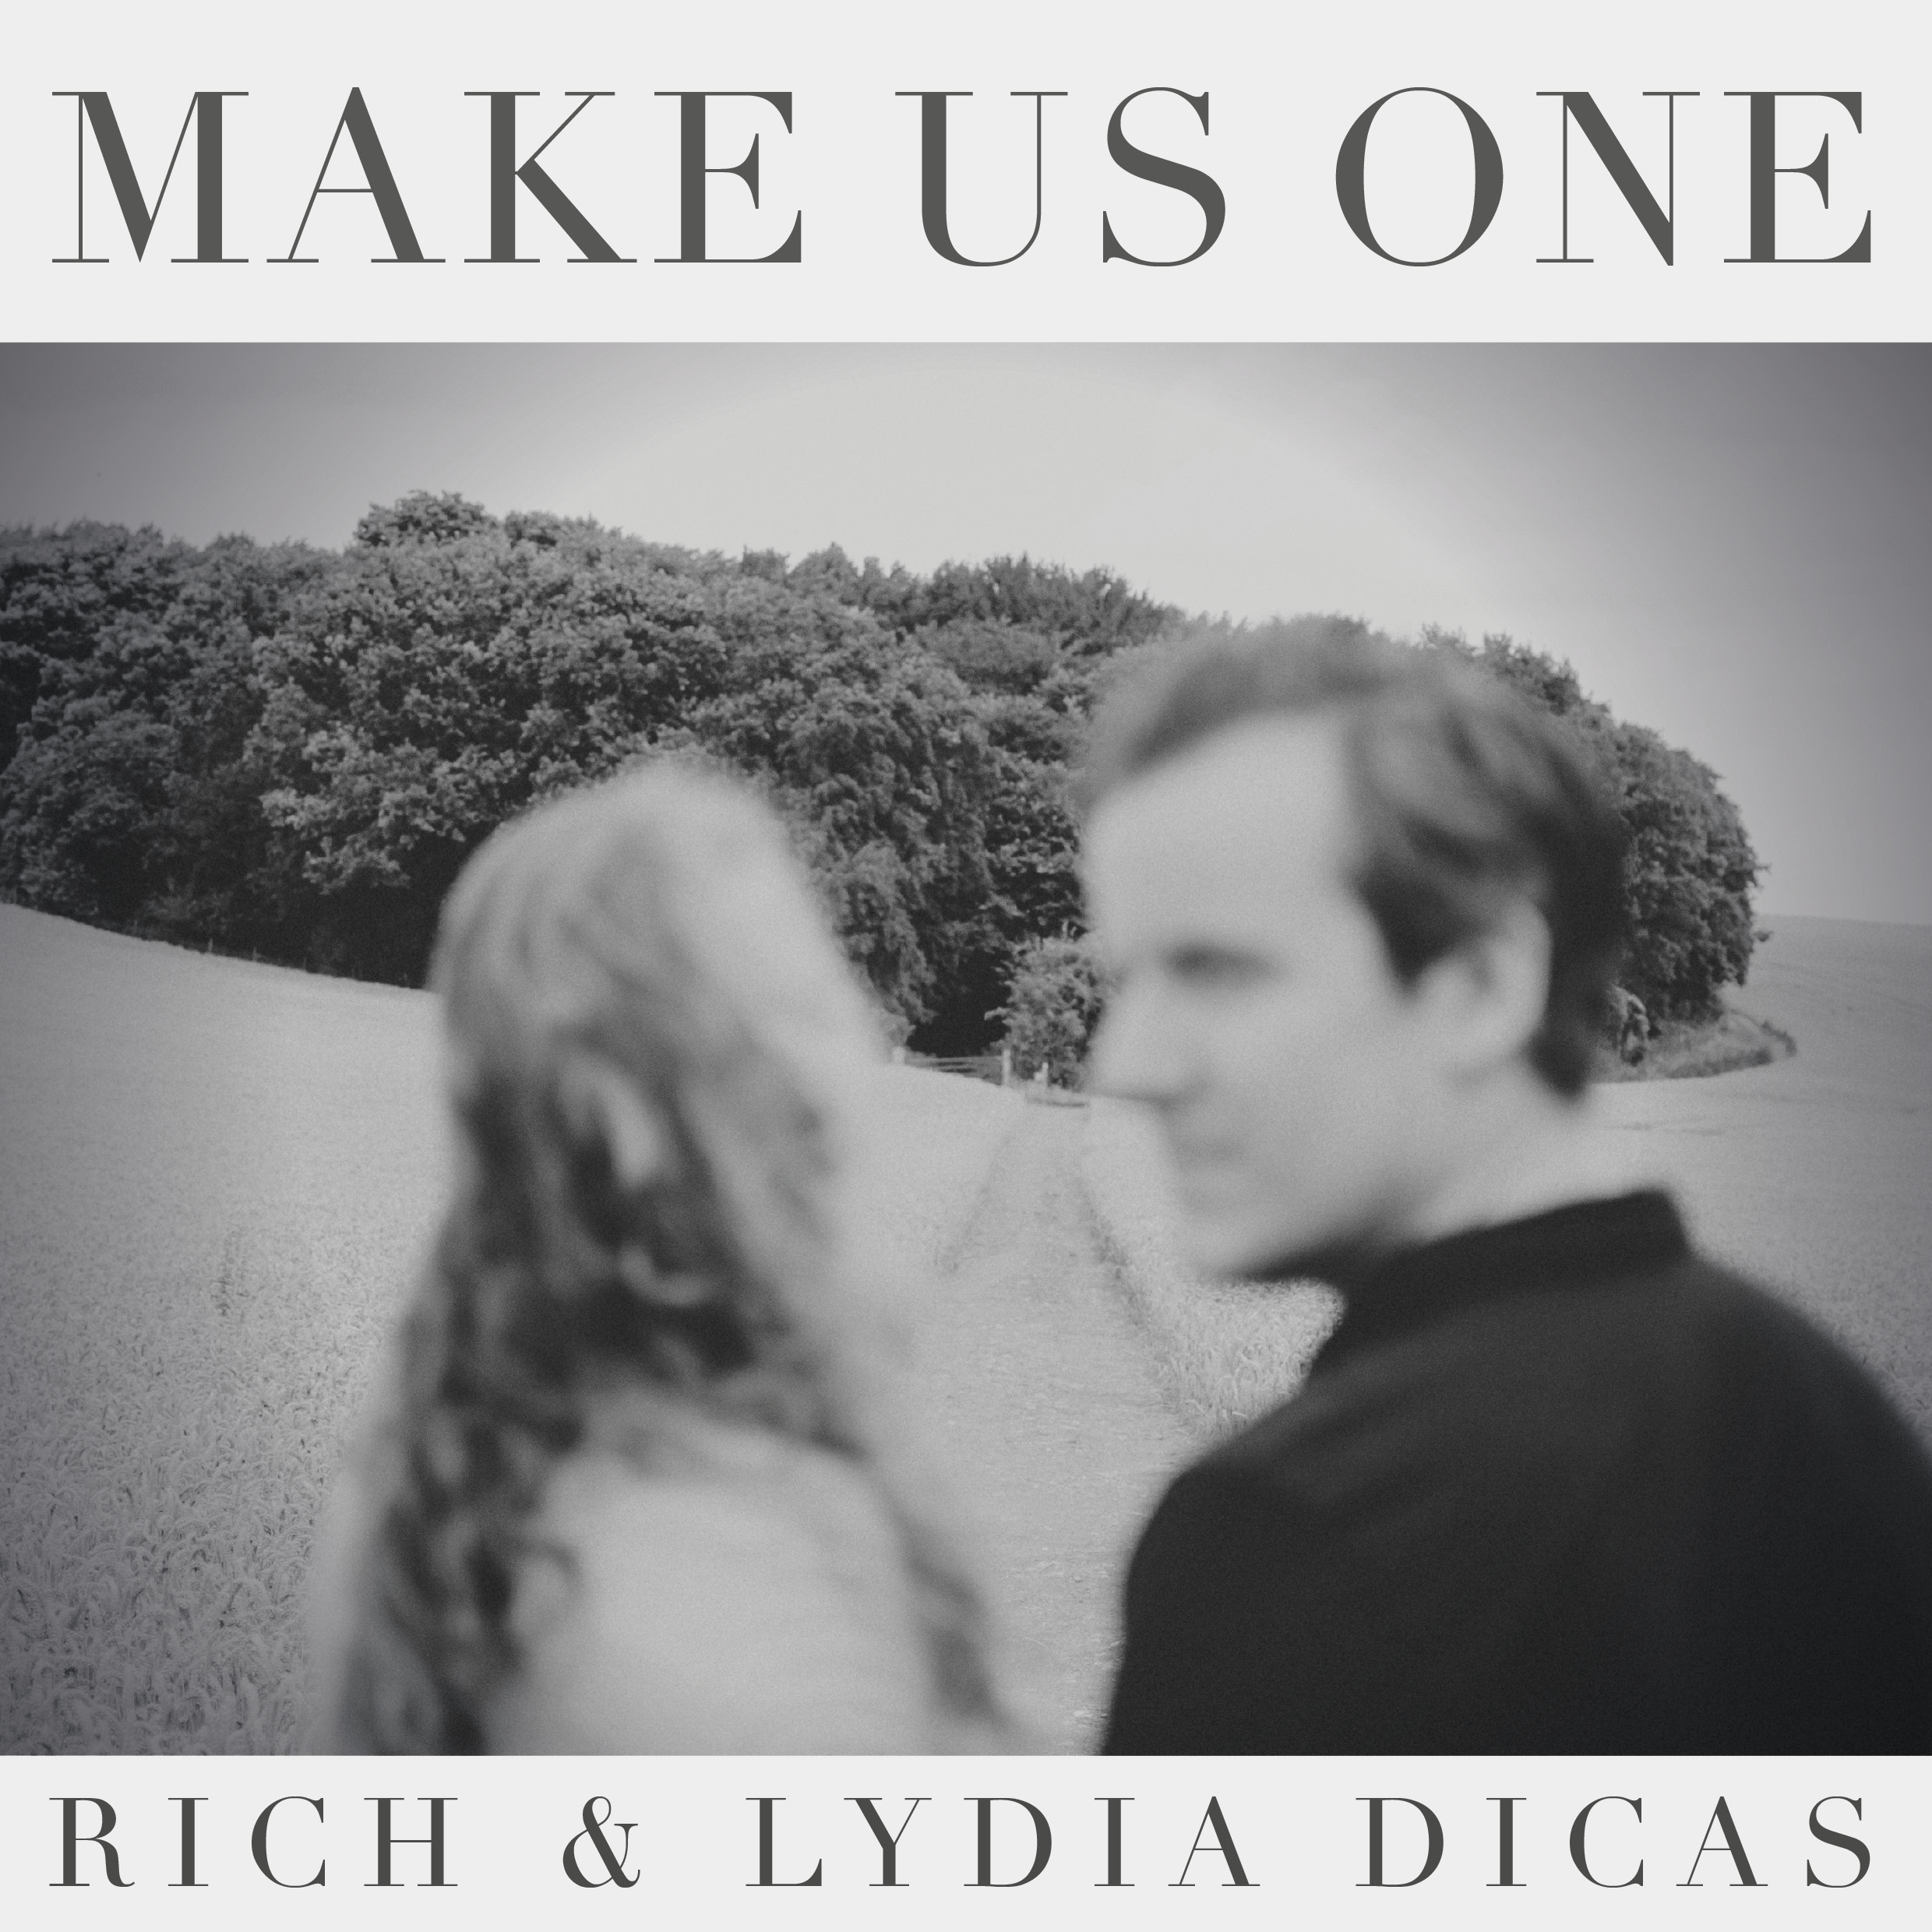 Rich & Lydia Dicas // Make Us One EP